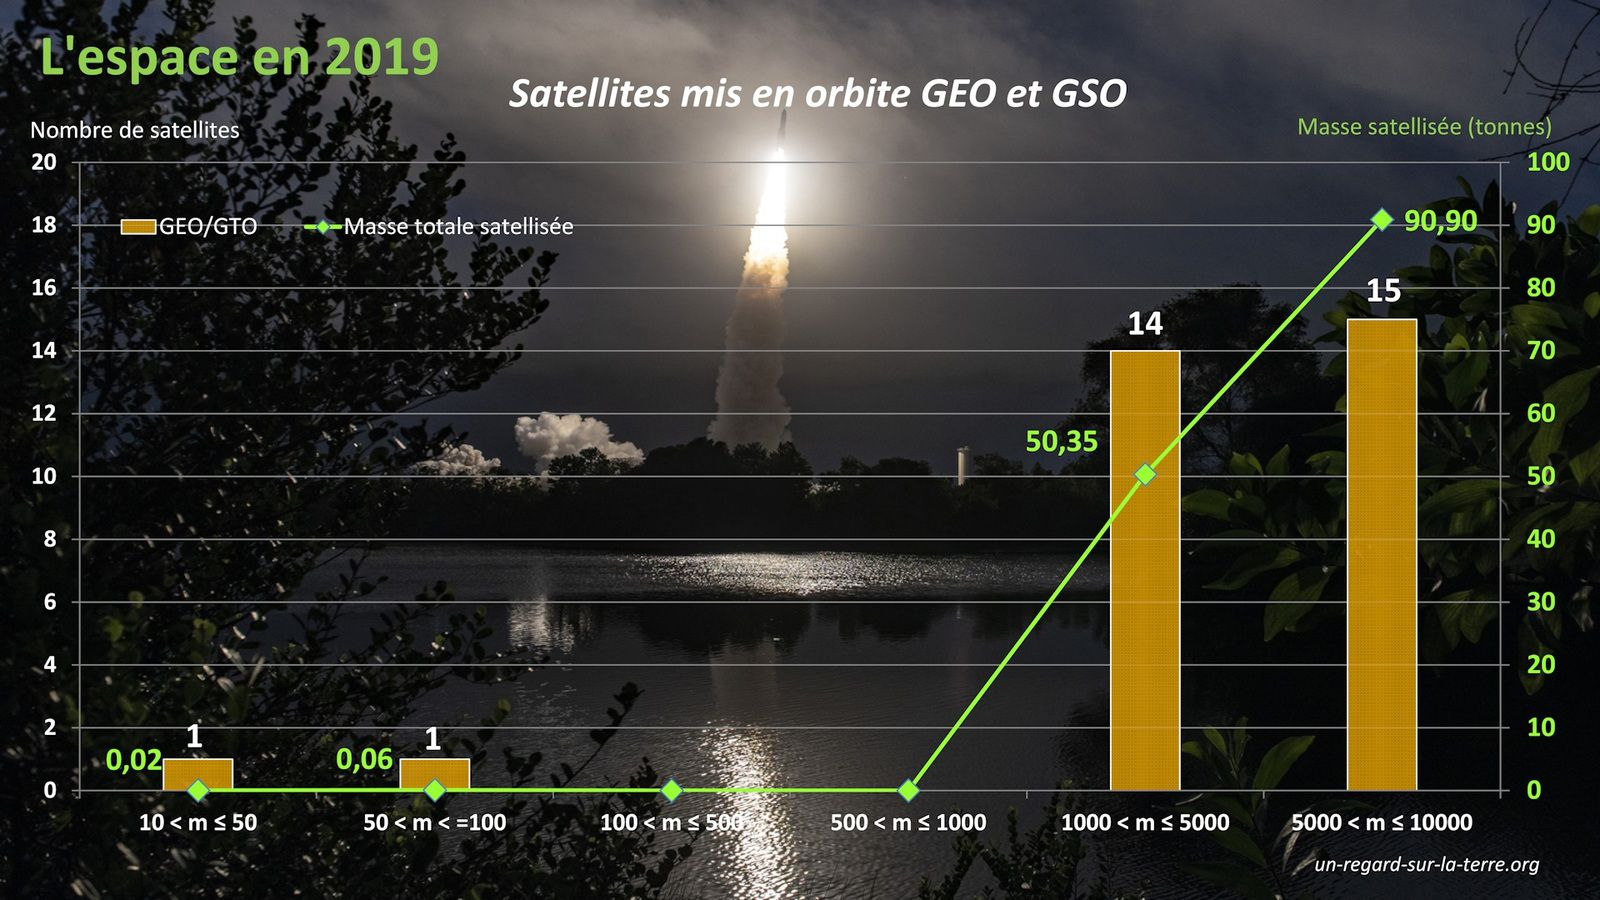 Année spatiale 2019 - Bilan des satellites 2019 - Orbite géostationnaire et géosynchone - GEO - Geostationary and geosynchnous Orbit - Nombre de satellites mis en orbite basse  - Masse satellisée par gamme de masse  - communications - meteorology - navigation